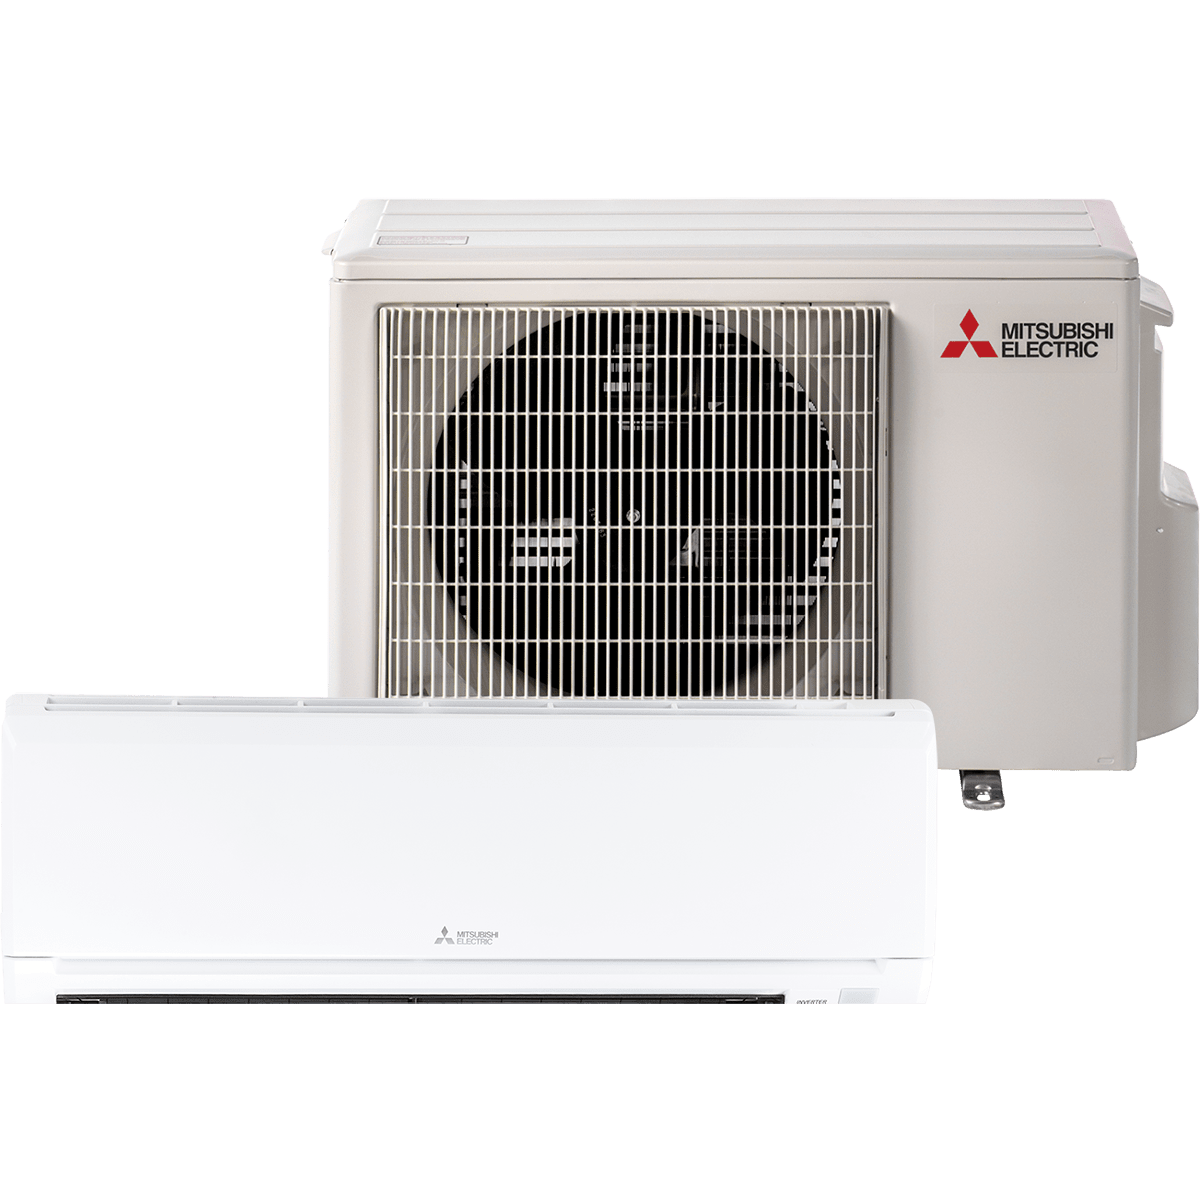 Mitsubishi 12,000 BTU Ductless Mini-Split Heat Pump